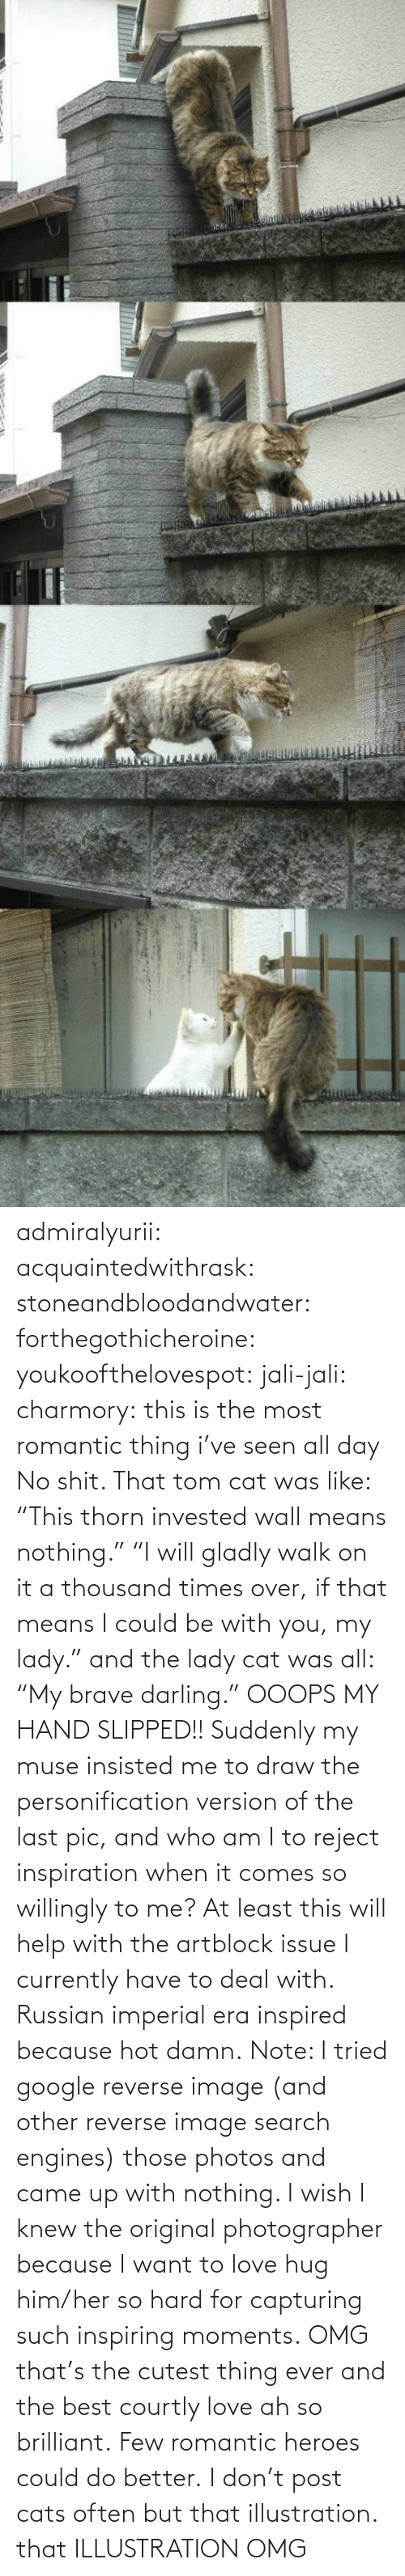 "post: admiralyurii: acquaintedwithrask:  stoneandbloodandwater:  forthegothicheroine:  youkoofthelovespot:  jali-jali:  charmory:  this is the most romantic thing i've seen all day  No shit. That tom cat was like: ""This thorn invested wall means nothing."" ""I will gladly walk on it a thousand times over, if that means I could be with you, my lady."" and the lady cat was all: ""My brave darling."" OOOPS MY HAND SLIPPED!!  Suddenly my muse insisted me to draw the personification version of the last pic, and who am I to reject inspiration when it comes so willingly to me? At least this will help with the artblock issue I currently have to deal with. Russian imperial era inspired because hot damn. Note: I tried google reverse image (and other reverse image search engines) those photos and came up with nothing. I wish I knew the original photographer because I want to love hug him/her so hard for capturing such inspiring moments.  OMG that's the cutest thing ever and the best courtly love ah so brilliant.  Few romantic heroes could do better.  I don't post cats often but that illustration.  that ILLUSTRATION    OMG"